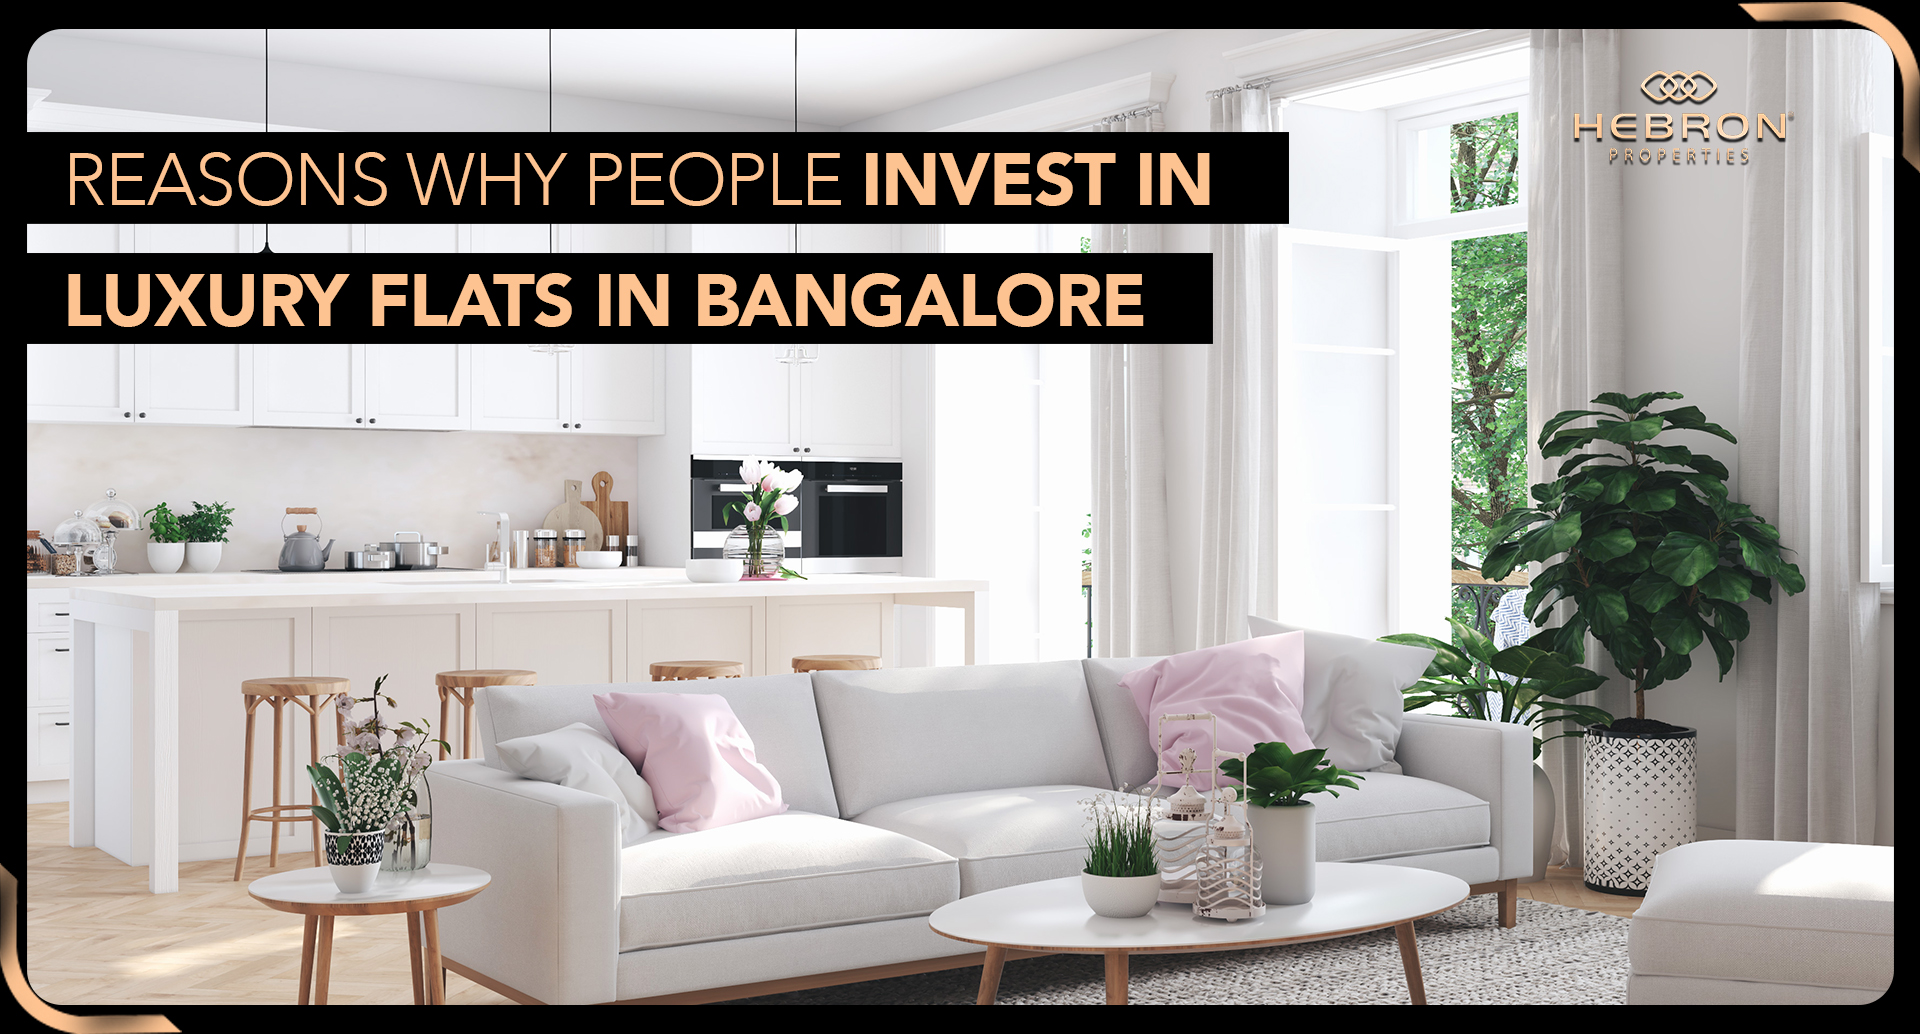 Reasons Why People Invest in Luxury Flats in Bangalore- Hebron Properties